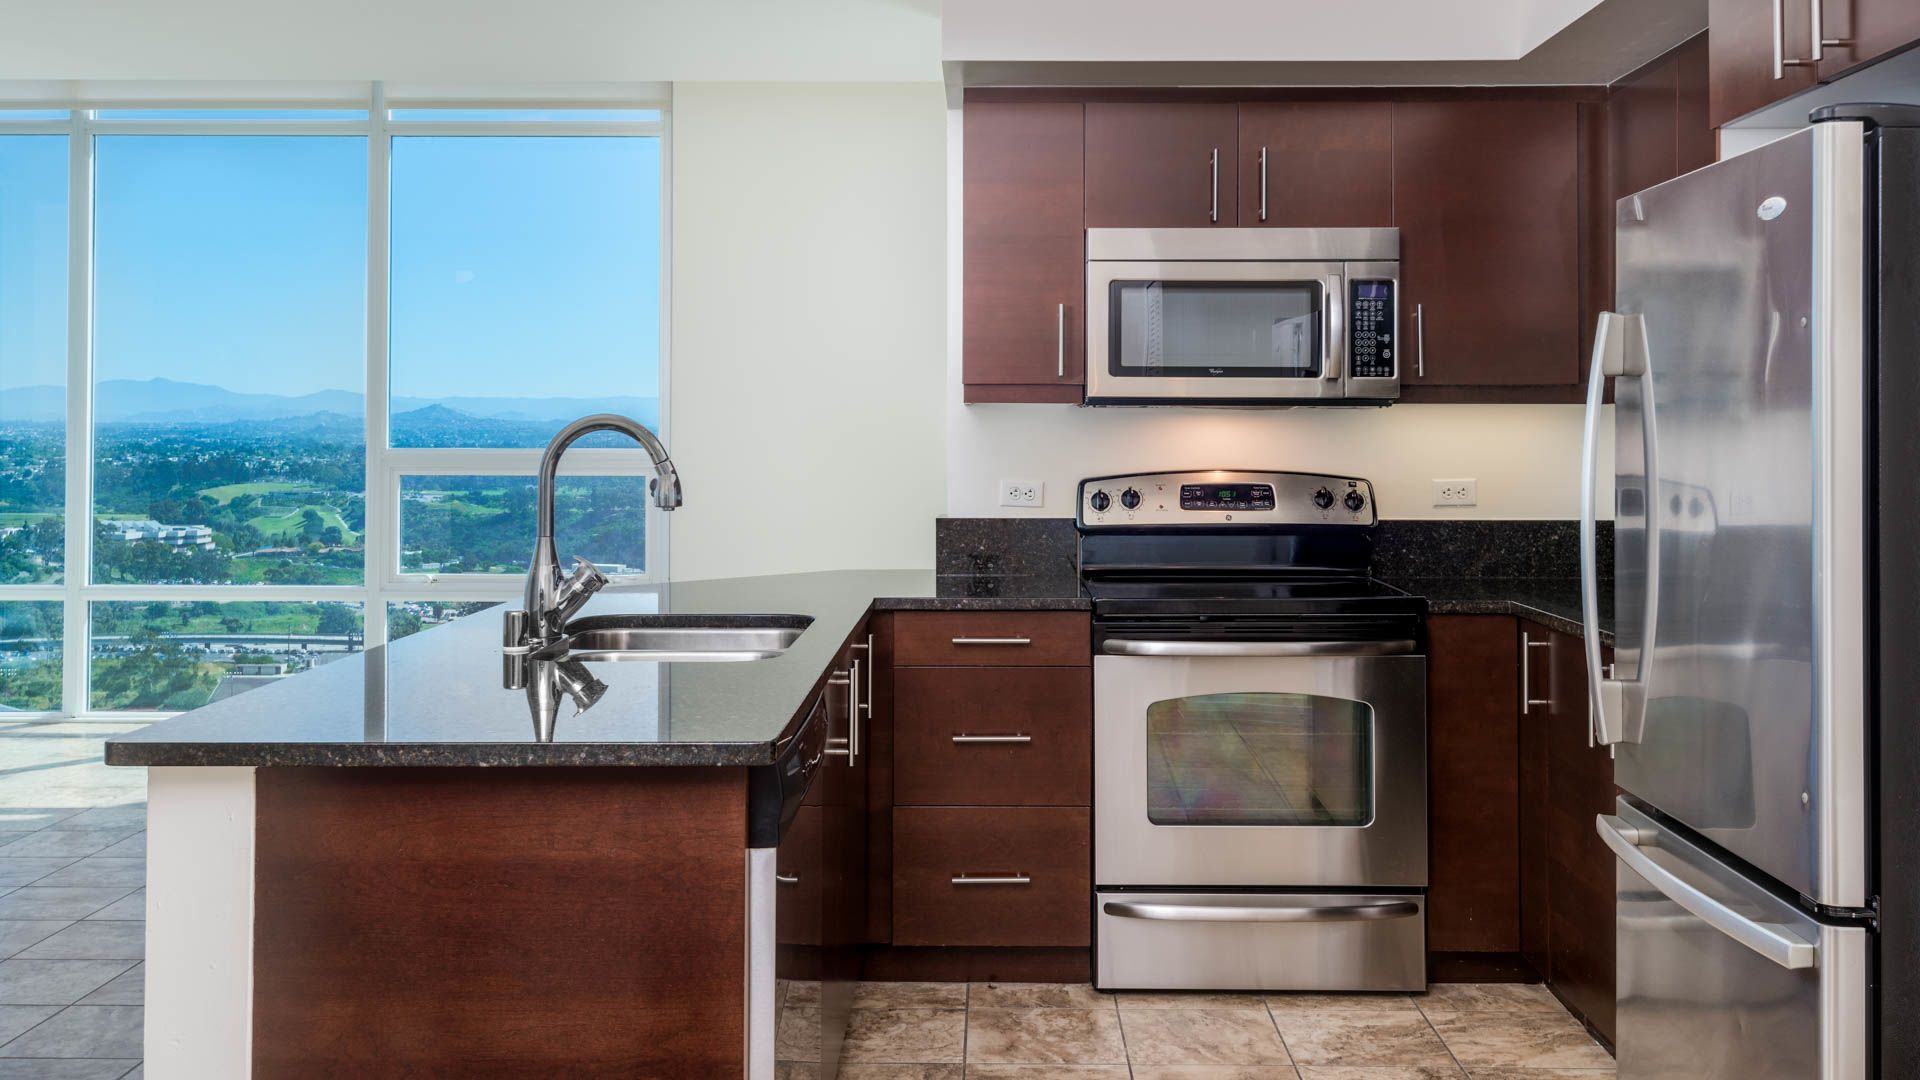 Vantage Pointe Apartments - Apartment Kitchen